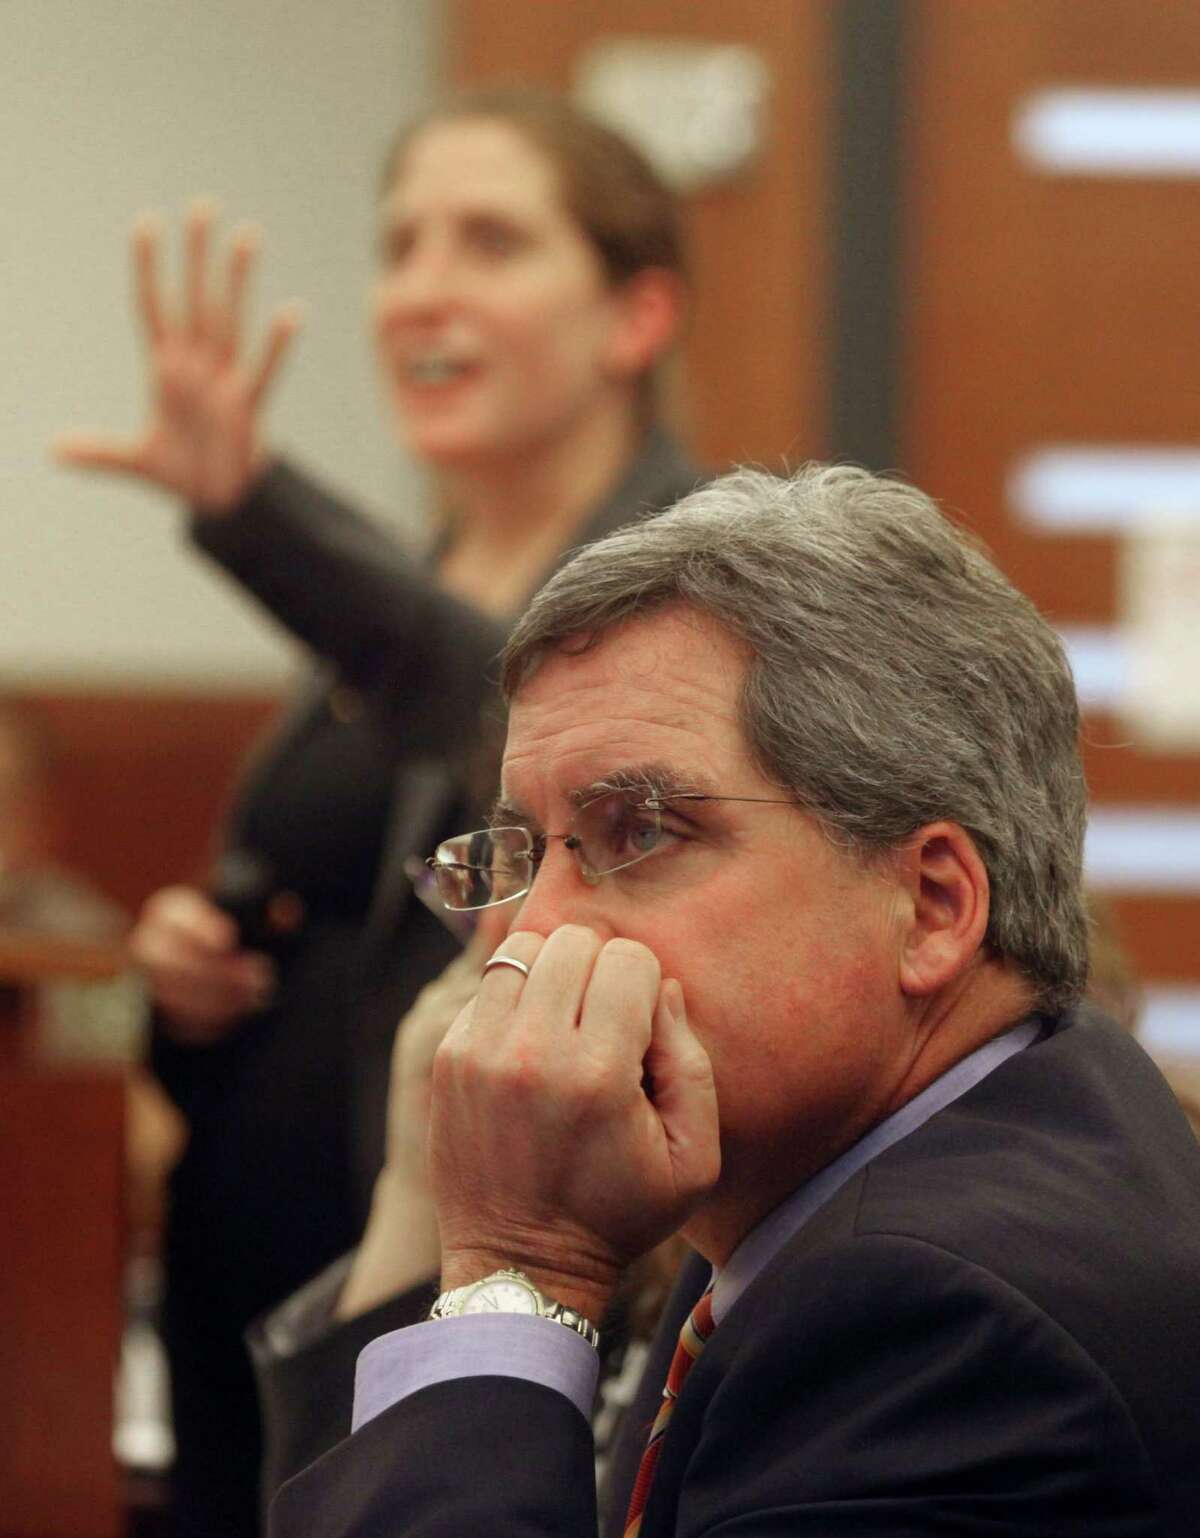 City attorney Dennis Herrera (front) listens as San Francisco deputy city attorney Sara Eisenberg speaks in defense of City College of San Francisco in Superior Court in San Francisco, Calif., on Tuesday, December 9, 2014.